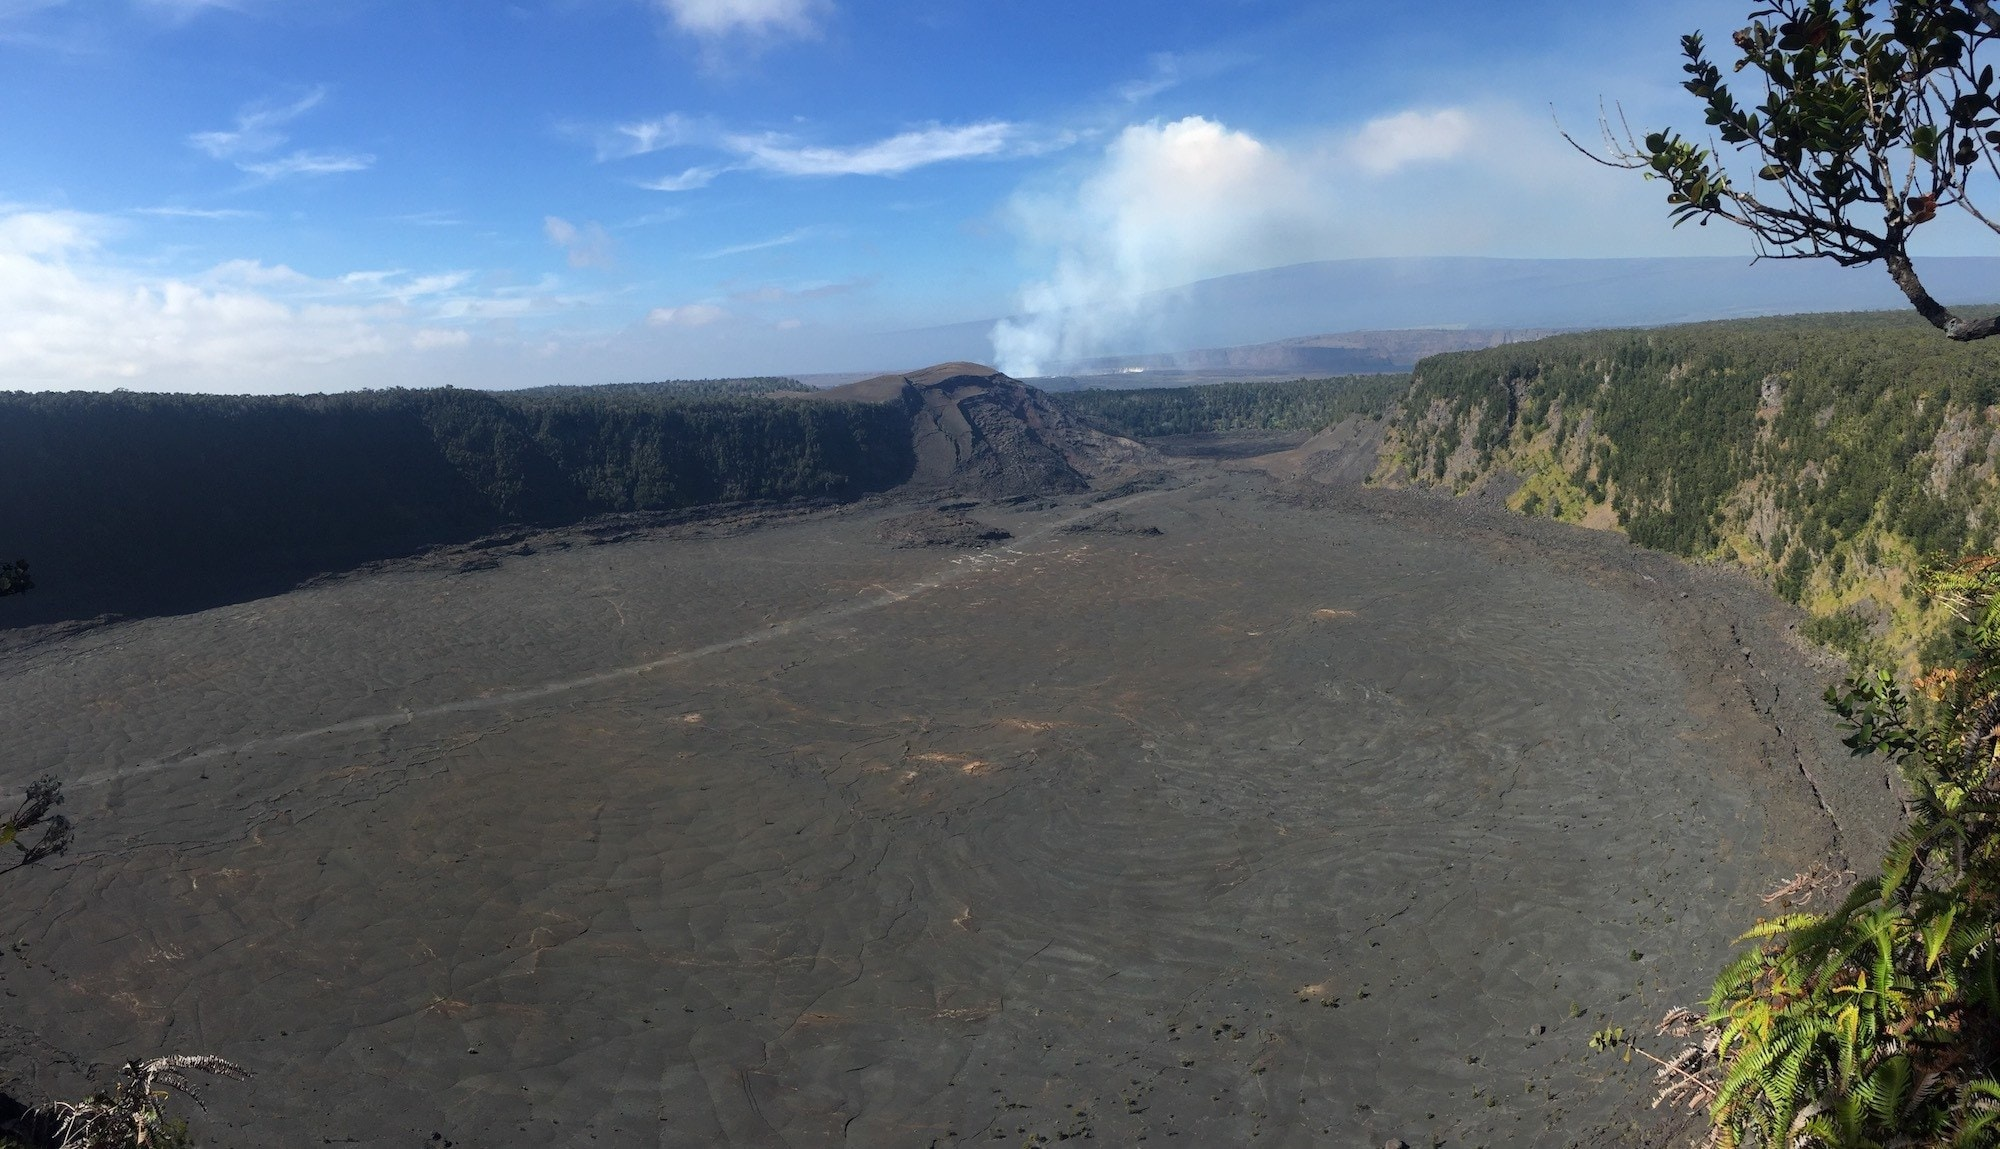 Kilauea Iki Crater Hike in Volcanoes National Park